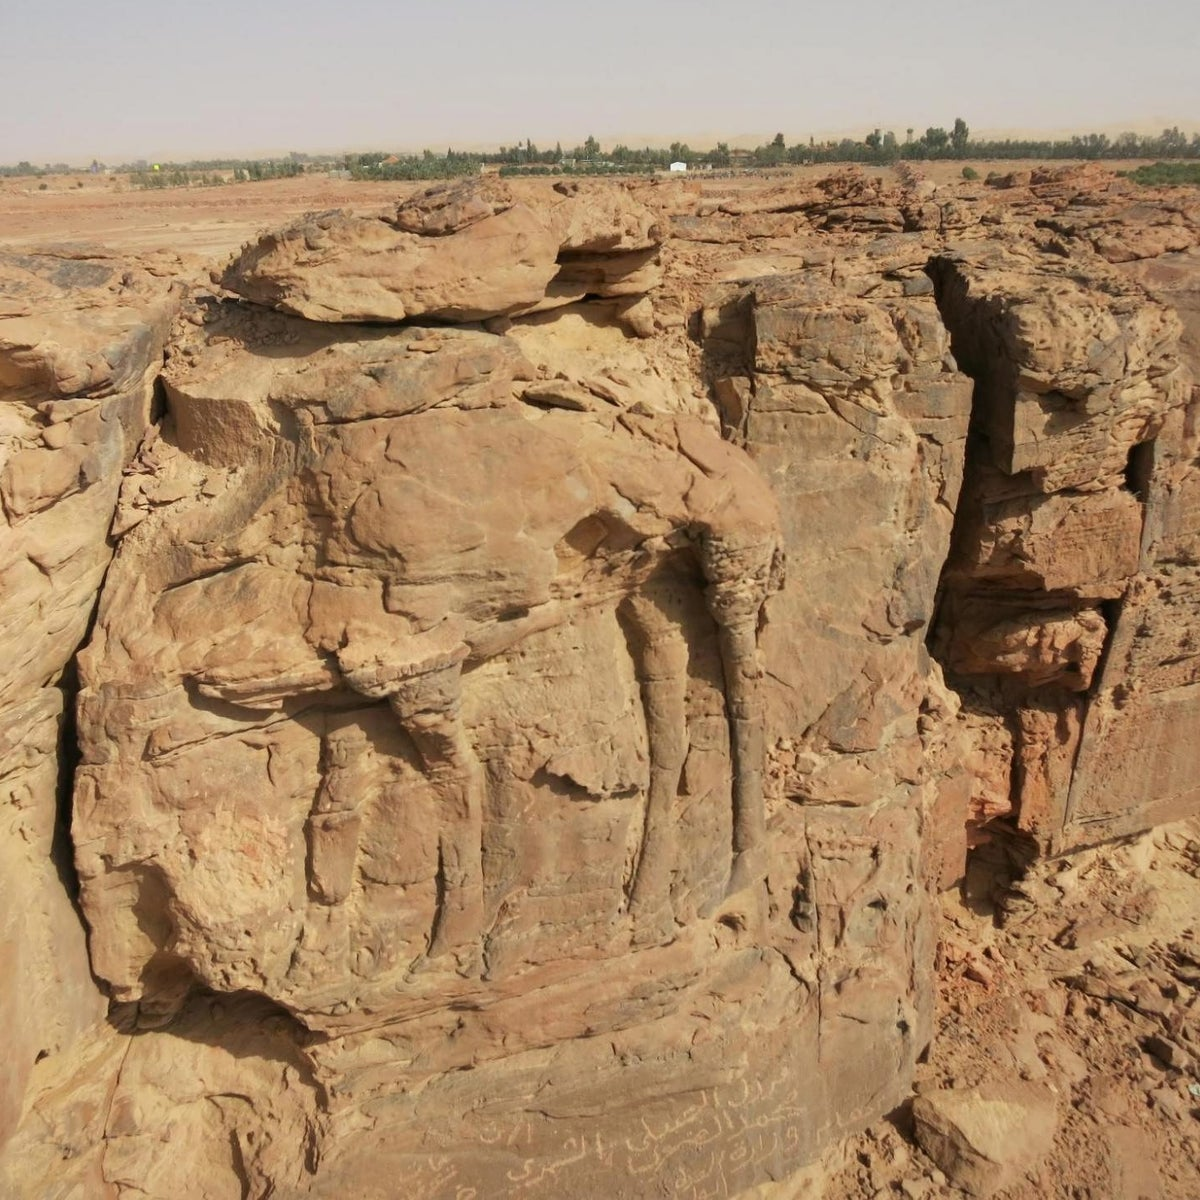 High relief of standing dromedary on sandstone spur at center of image